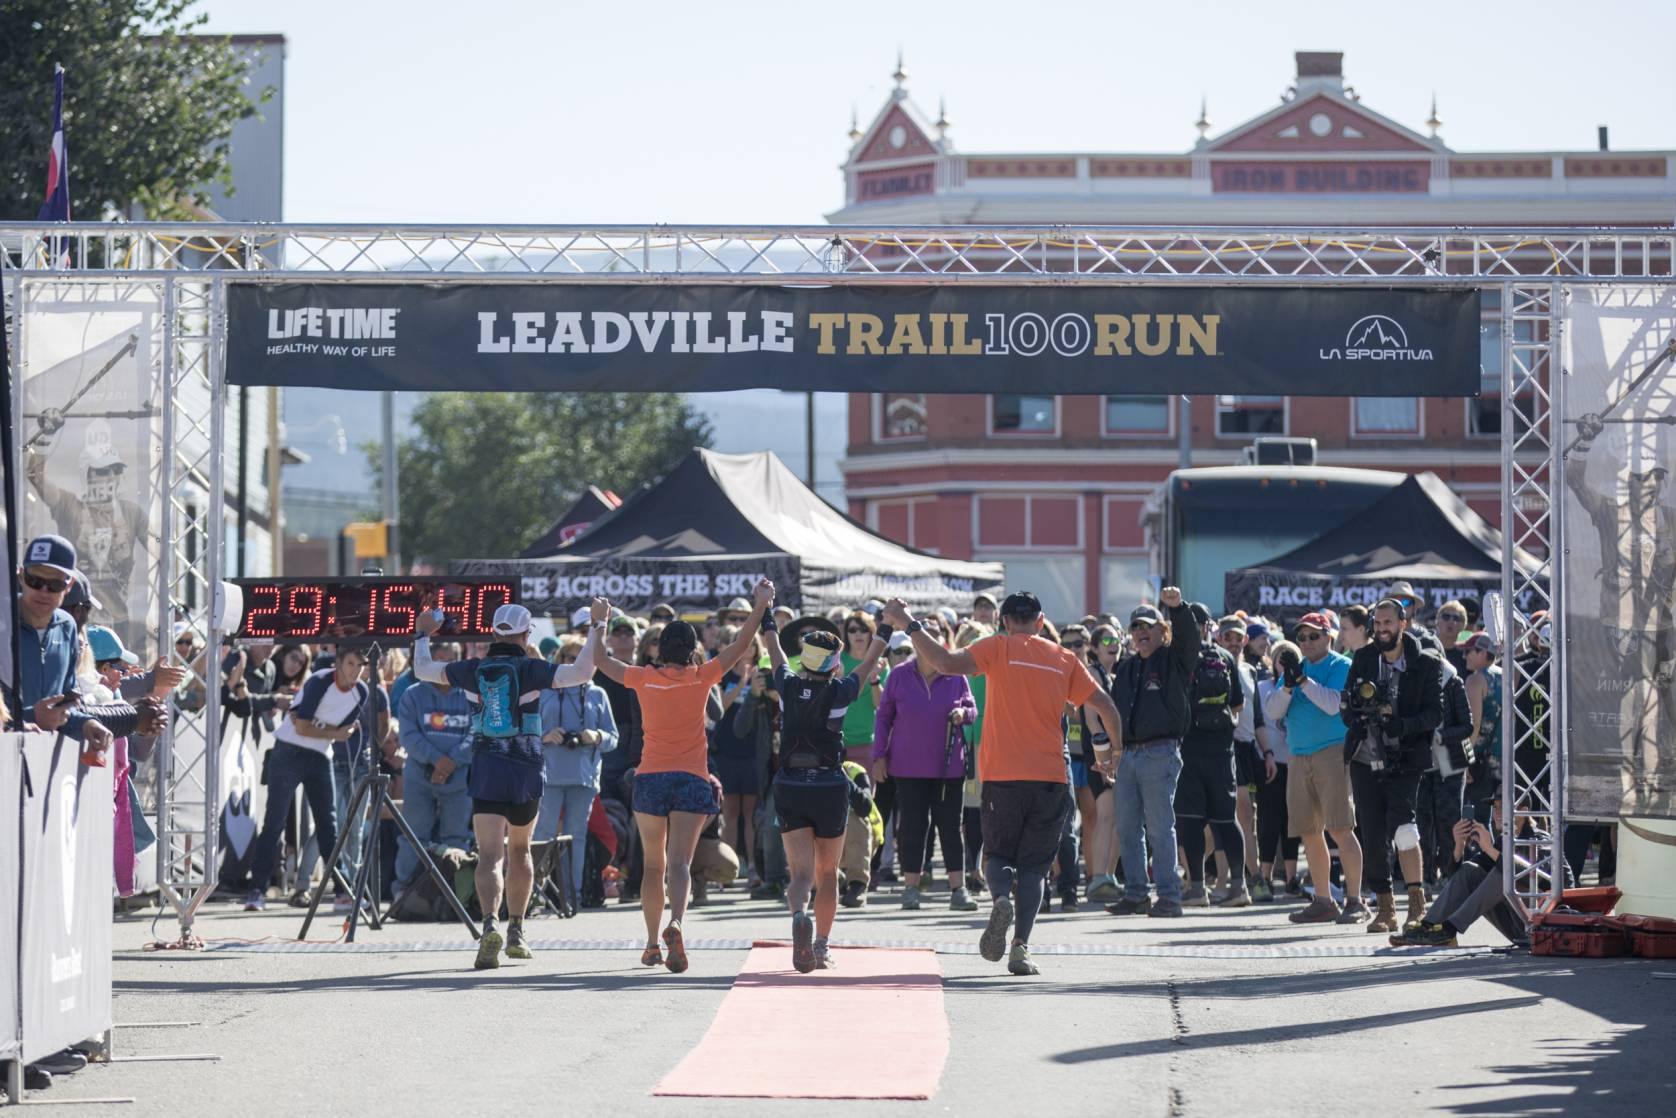 Leadville 100 Run Race Series